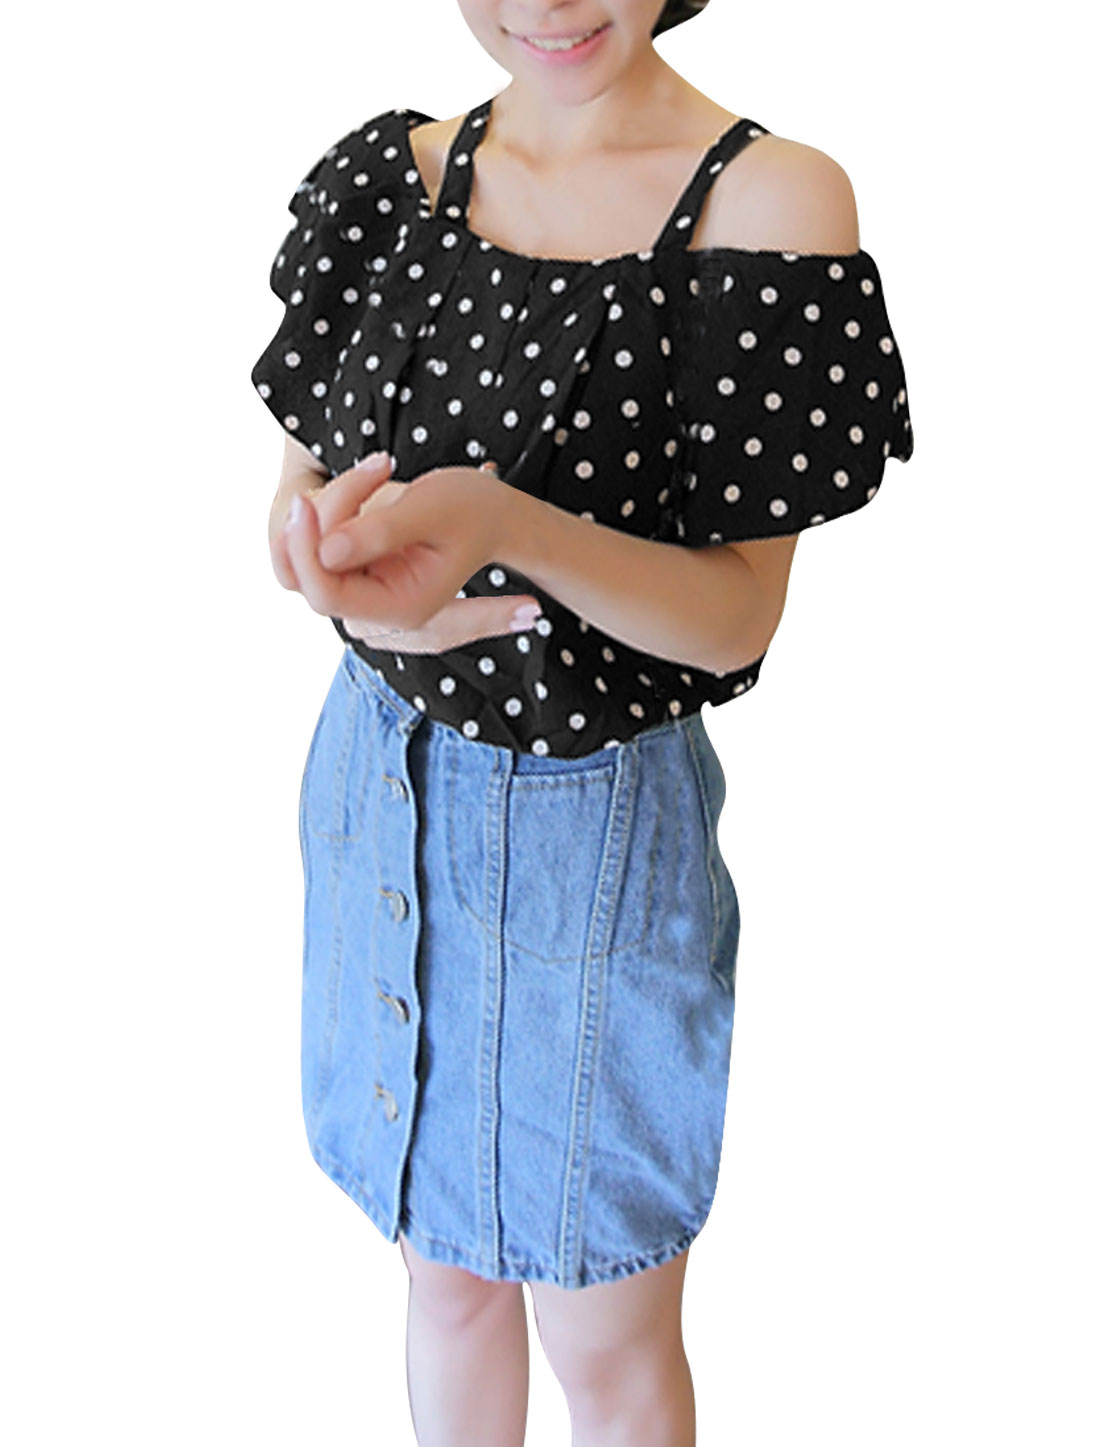 Lady Dots Prints Black Falbala Off-shoulder Chiffon Top S